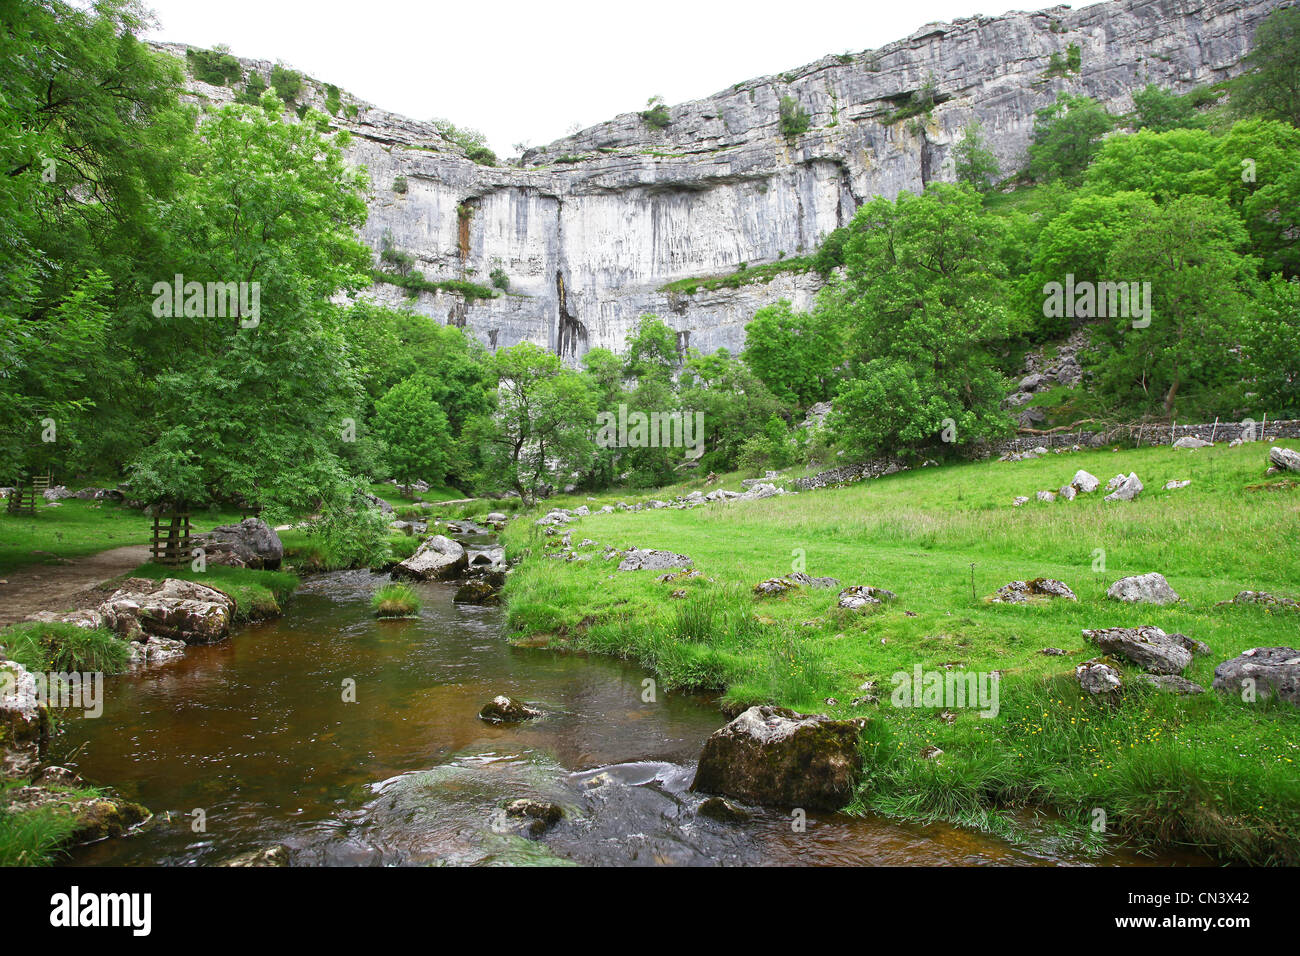 Malham Beck stream Malham Cove, North Yorkshire, Yorkshire Dales National Park, England, UK - Stock Image